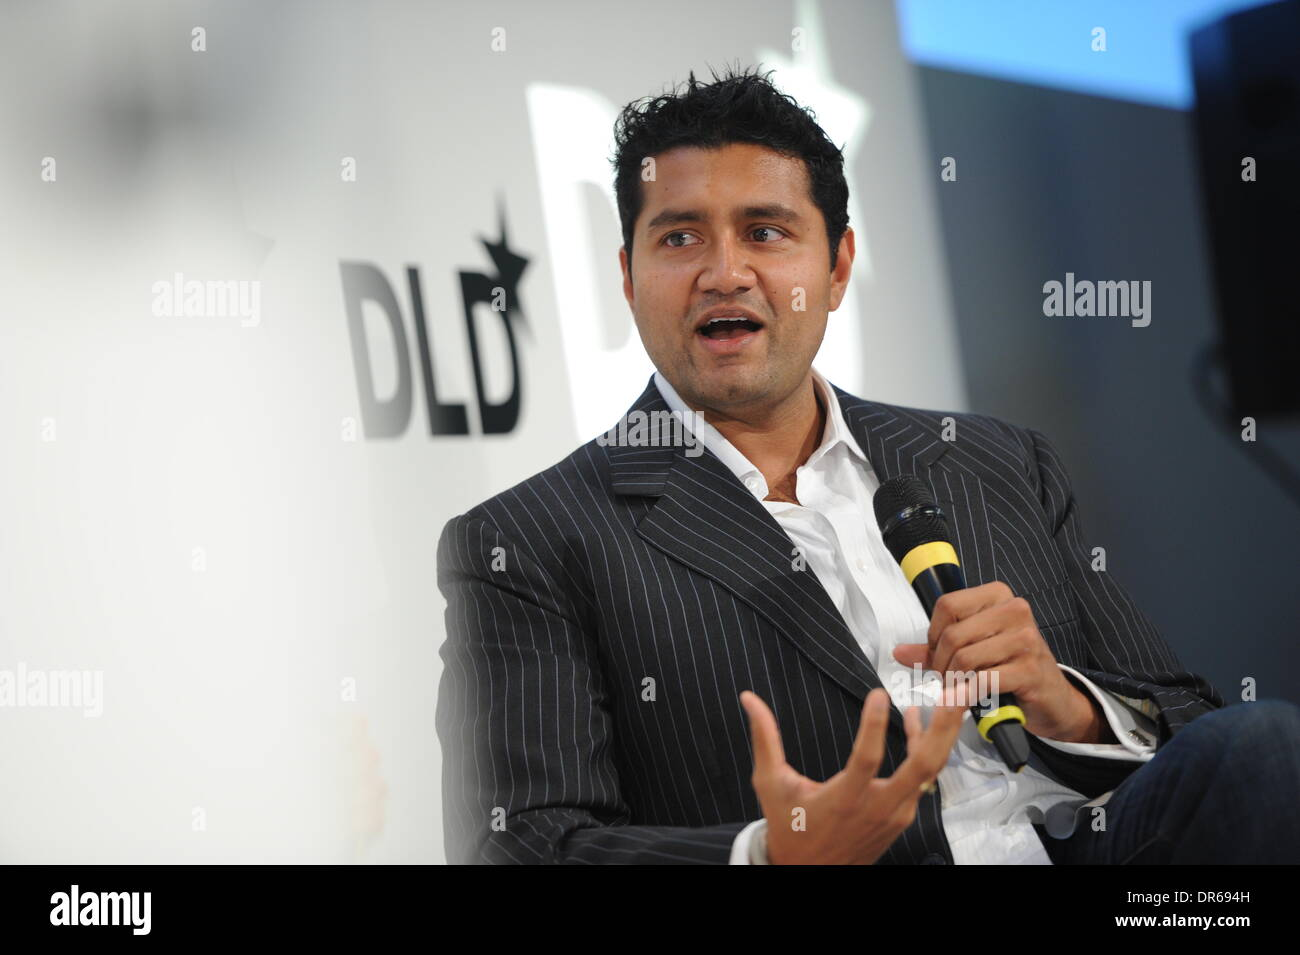 MUNICH/GERMANY - JANUARY 20: Shyam Sankar (Palantir) gestures on the